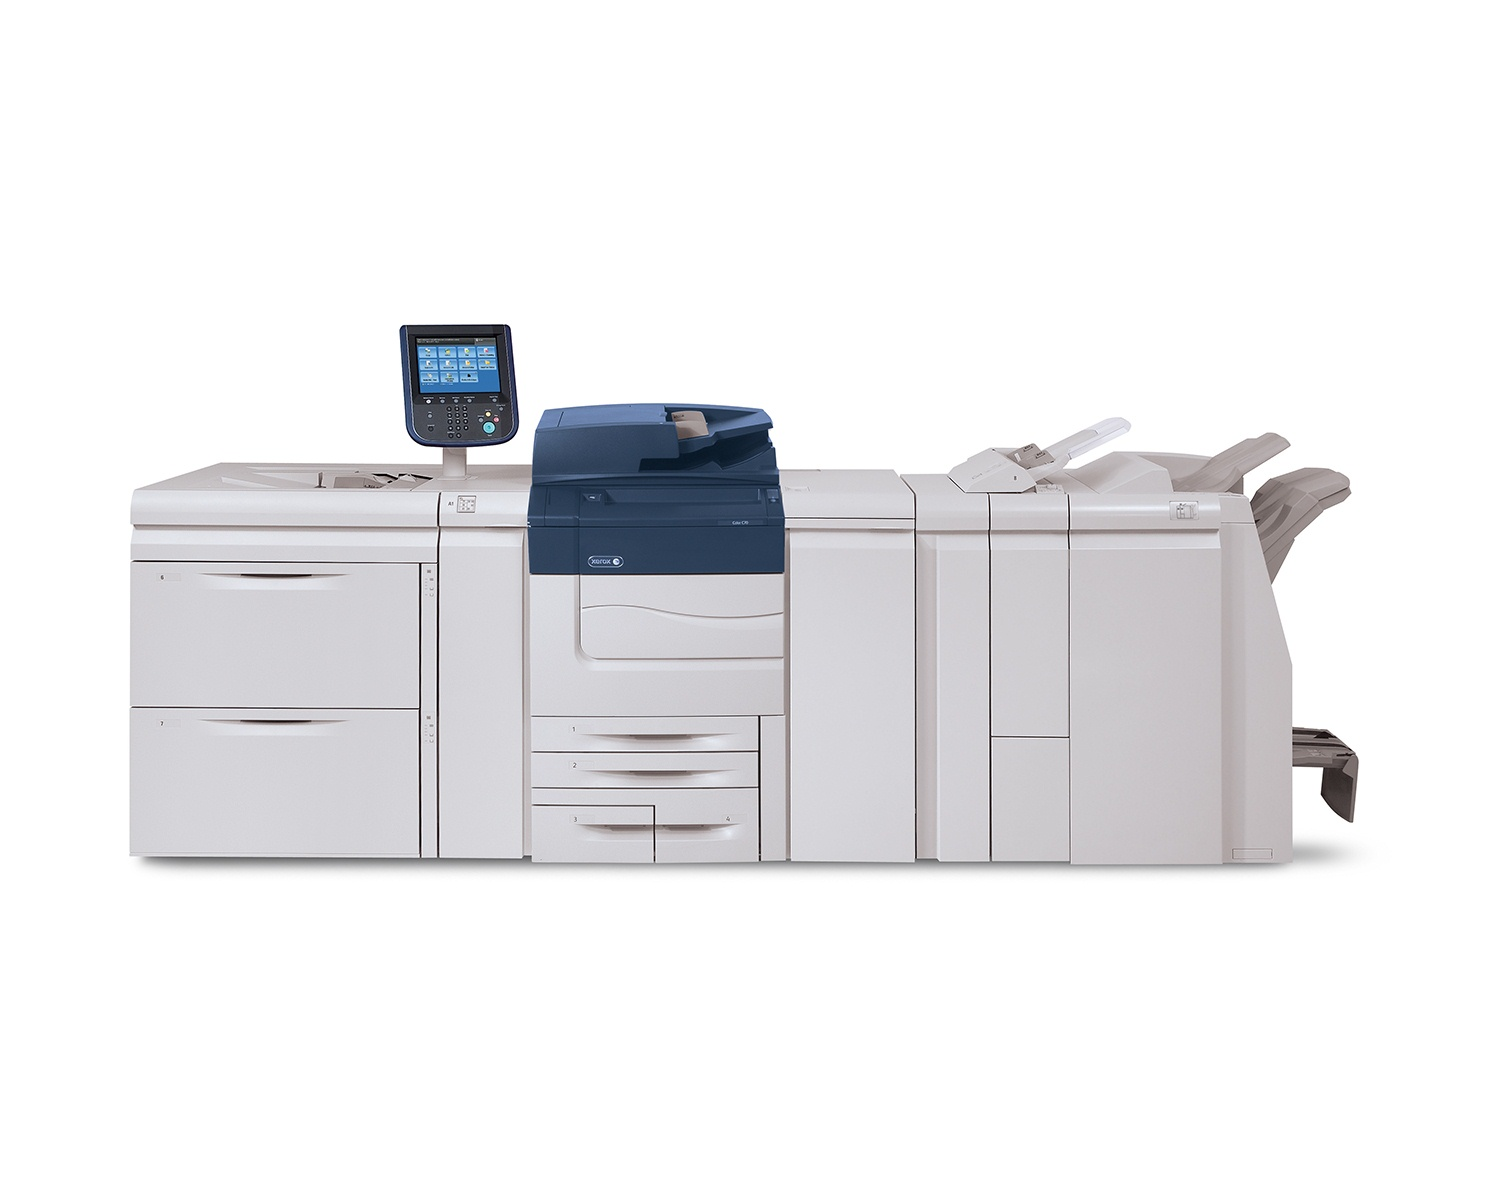 Xerox Color C70 Printer Details The